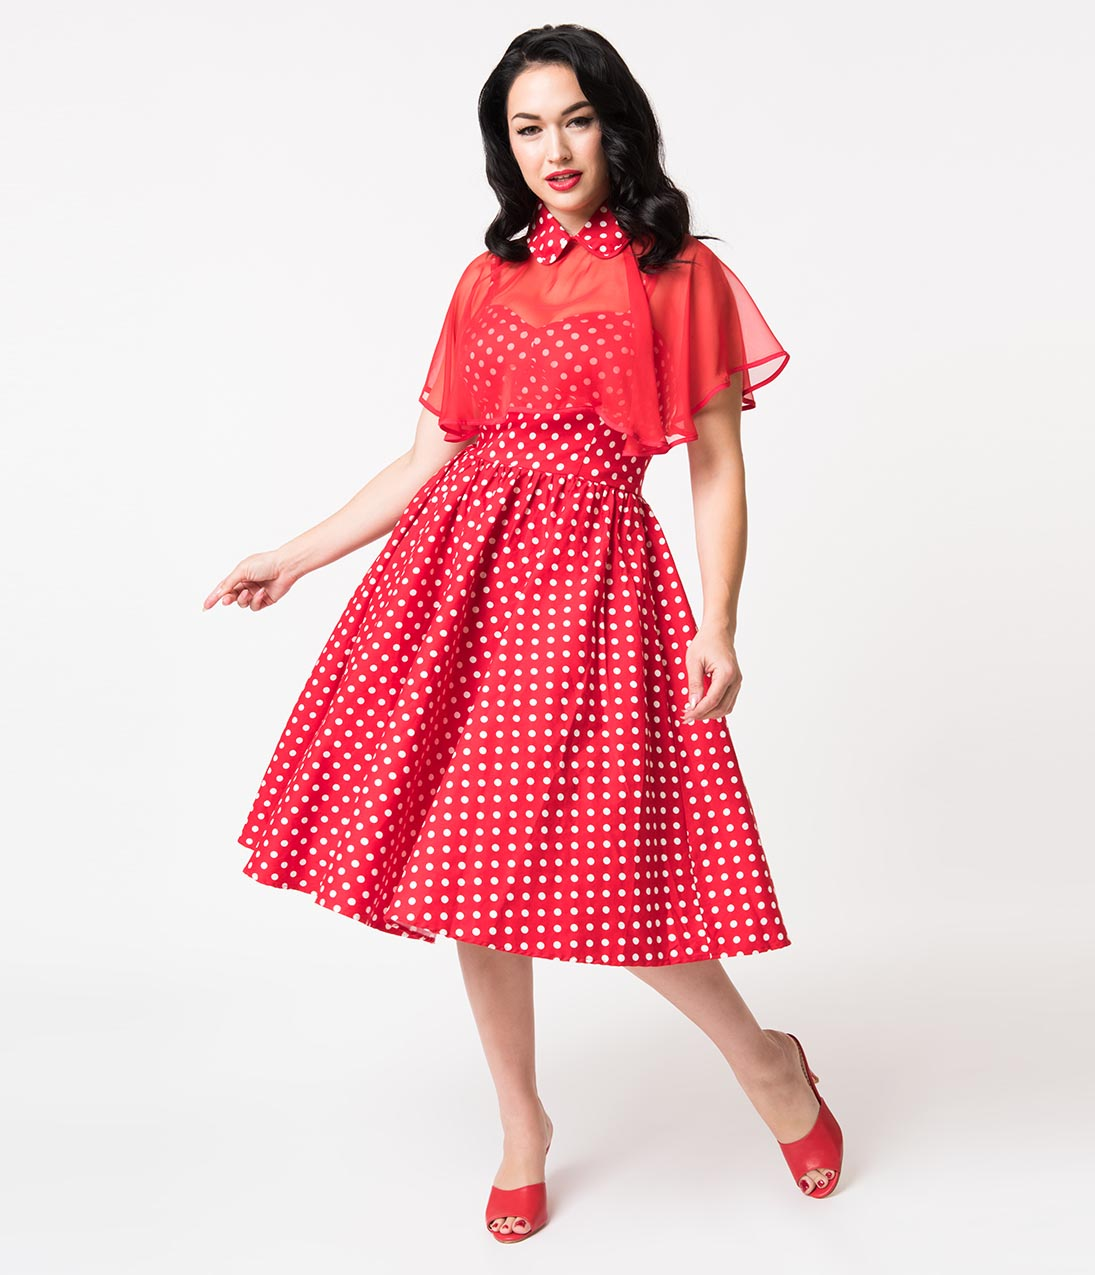 Swing Dance Clothing You Can Dance In Unique Vintage 1940S Style Red  White Polka Dot Cotton Luna Swing Dress  Mesh Capelet $65.00 AT vintagedancer.com